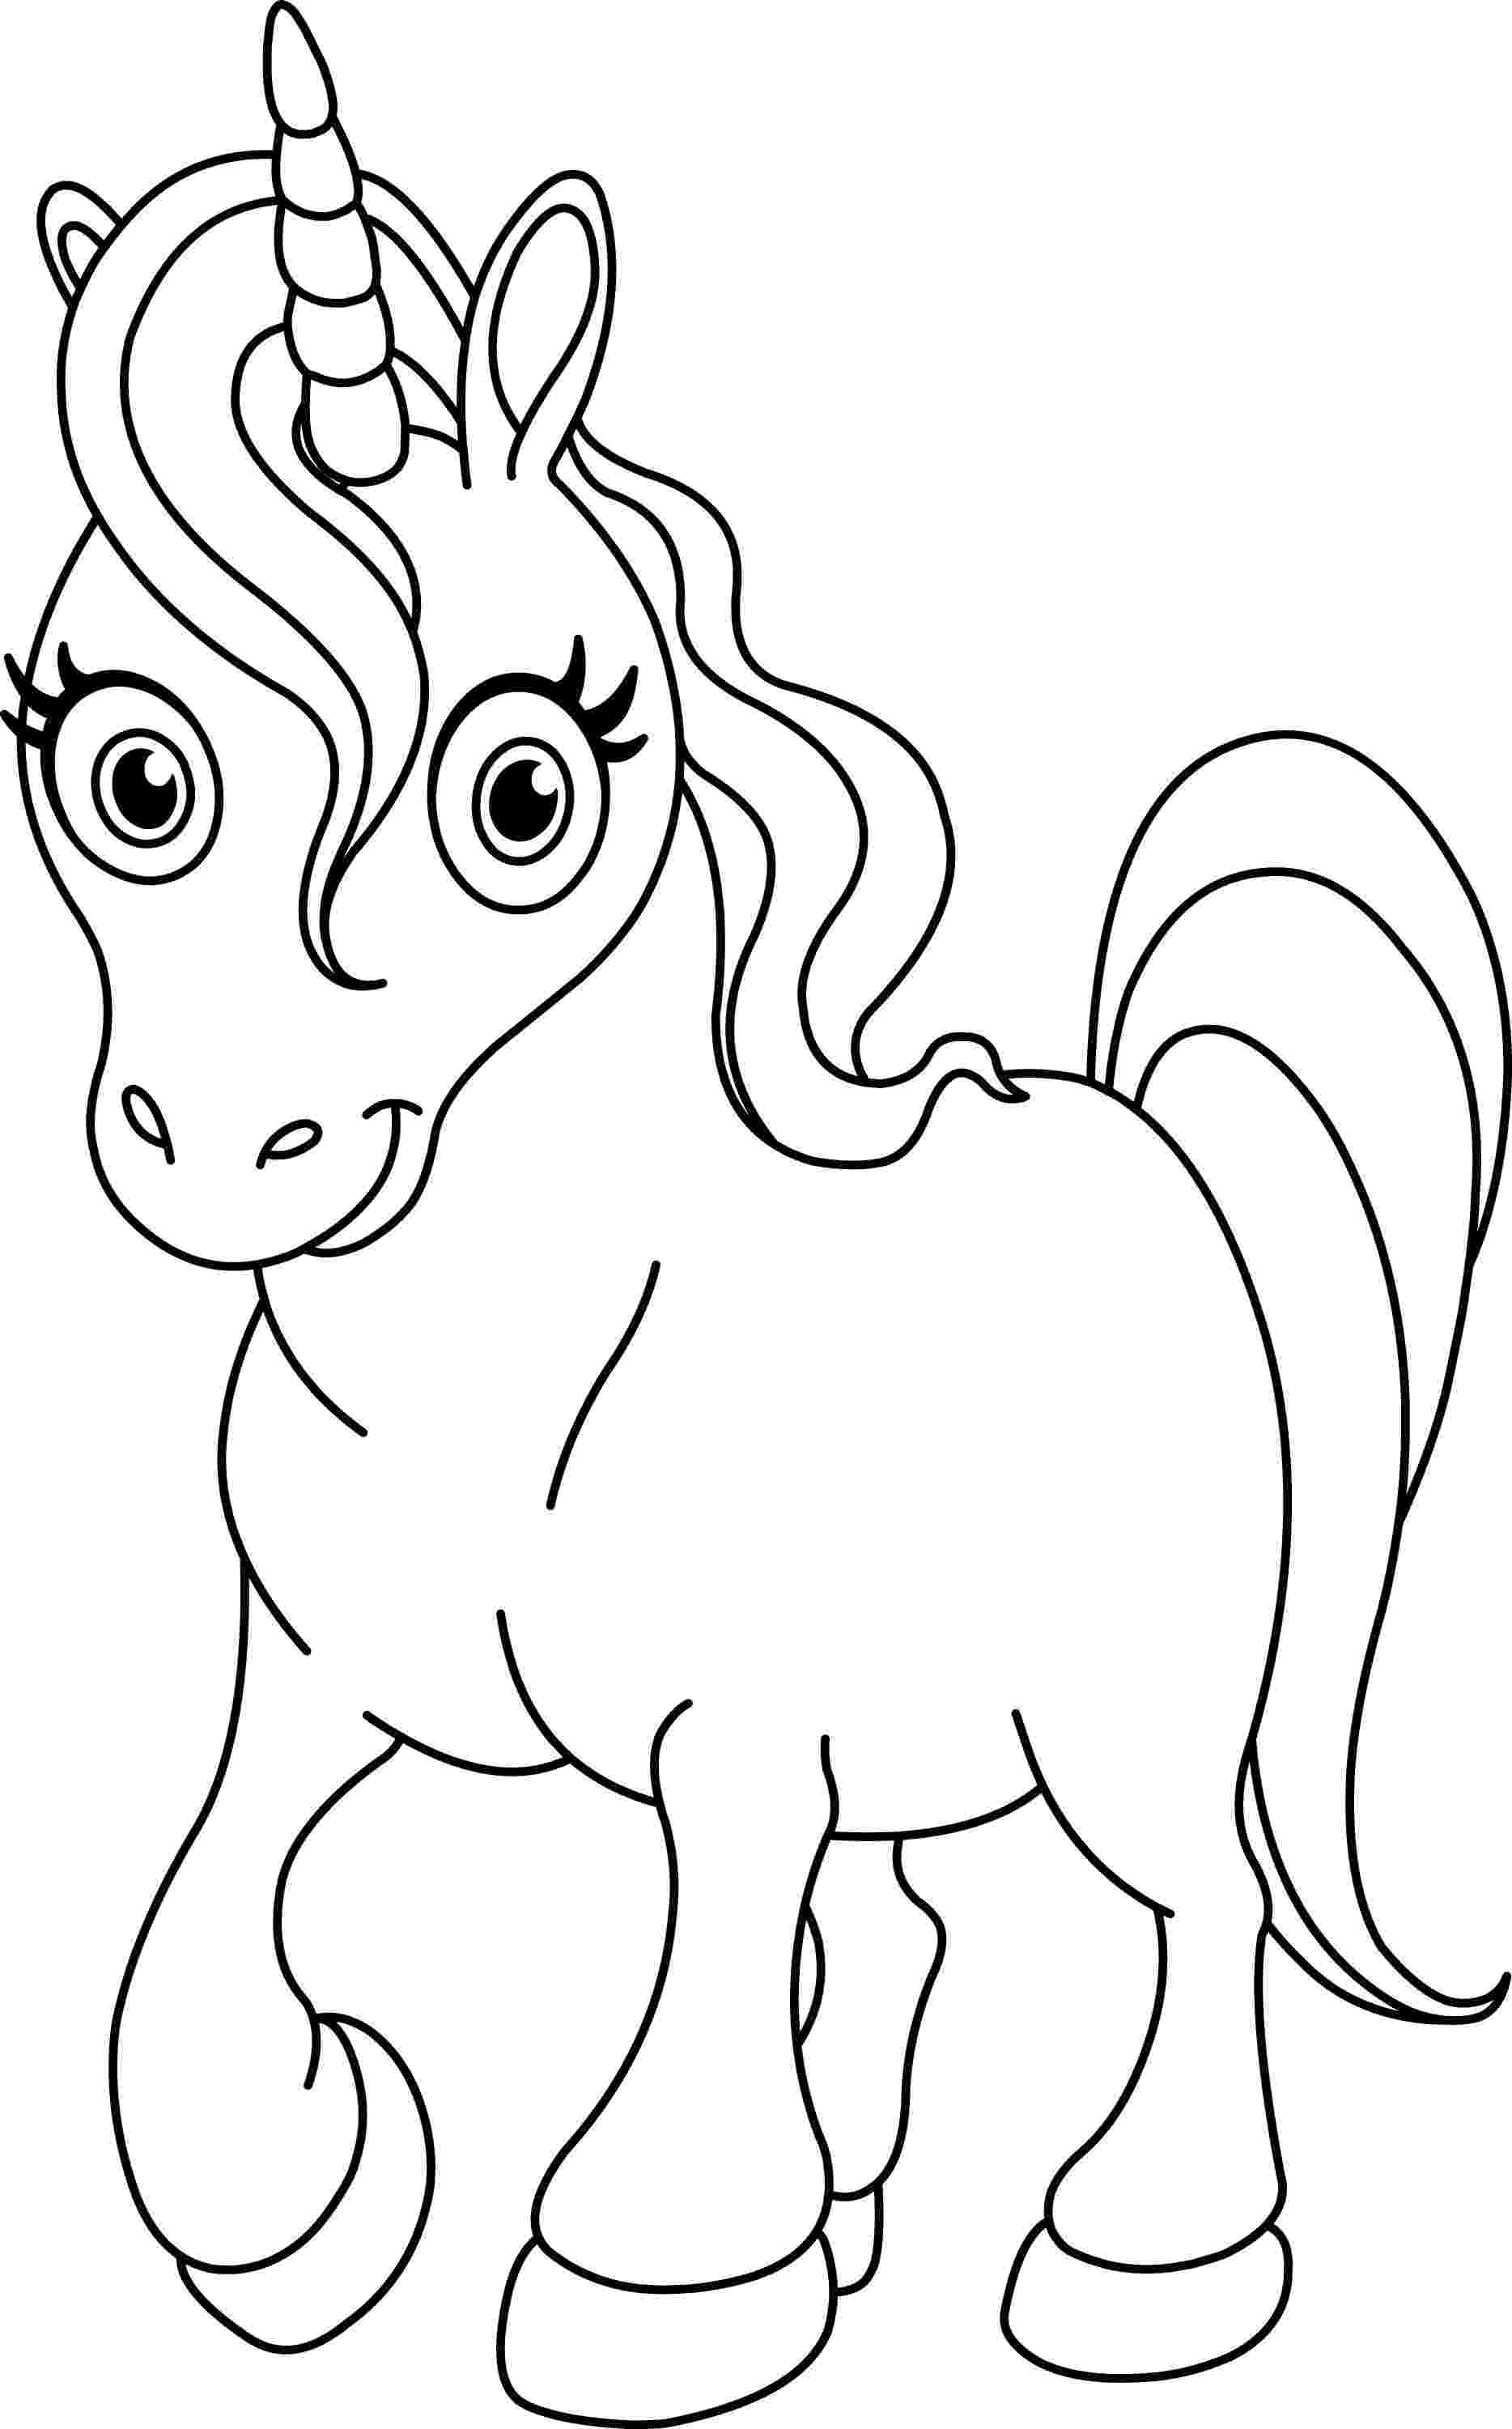 coloring pages print unicorn coloring pages to download and print for free print pages coloring